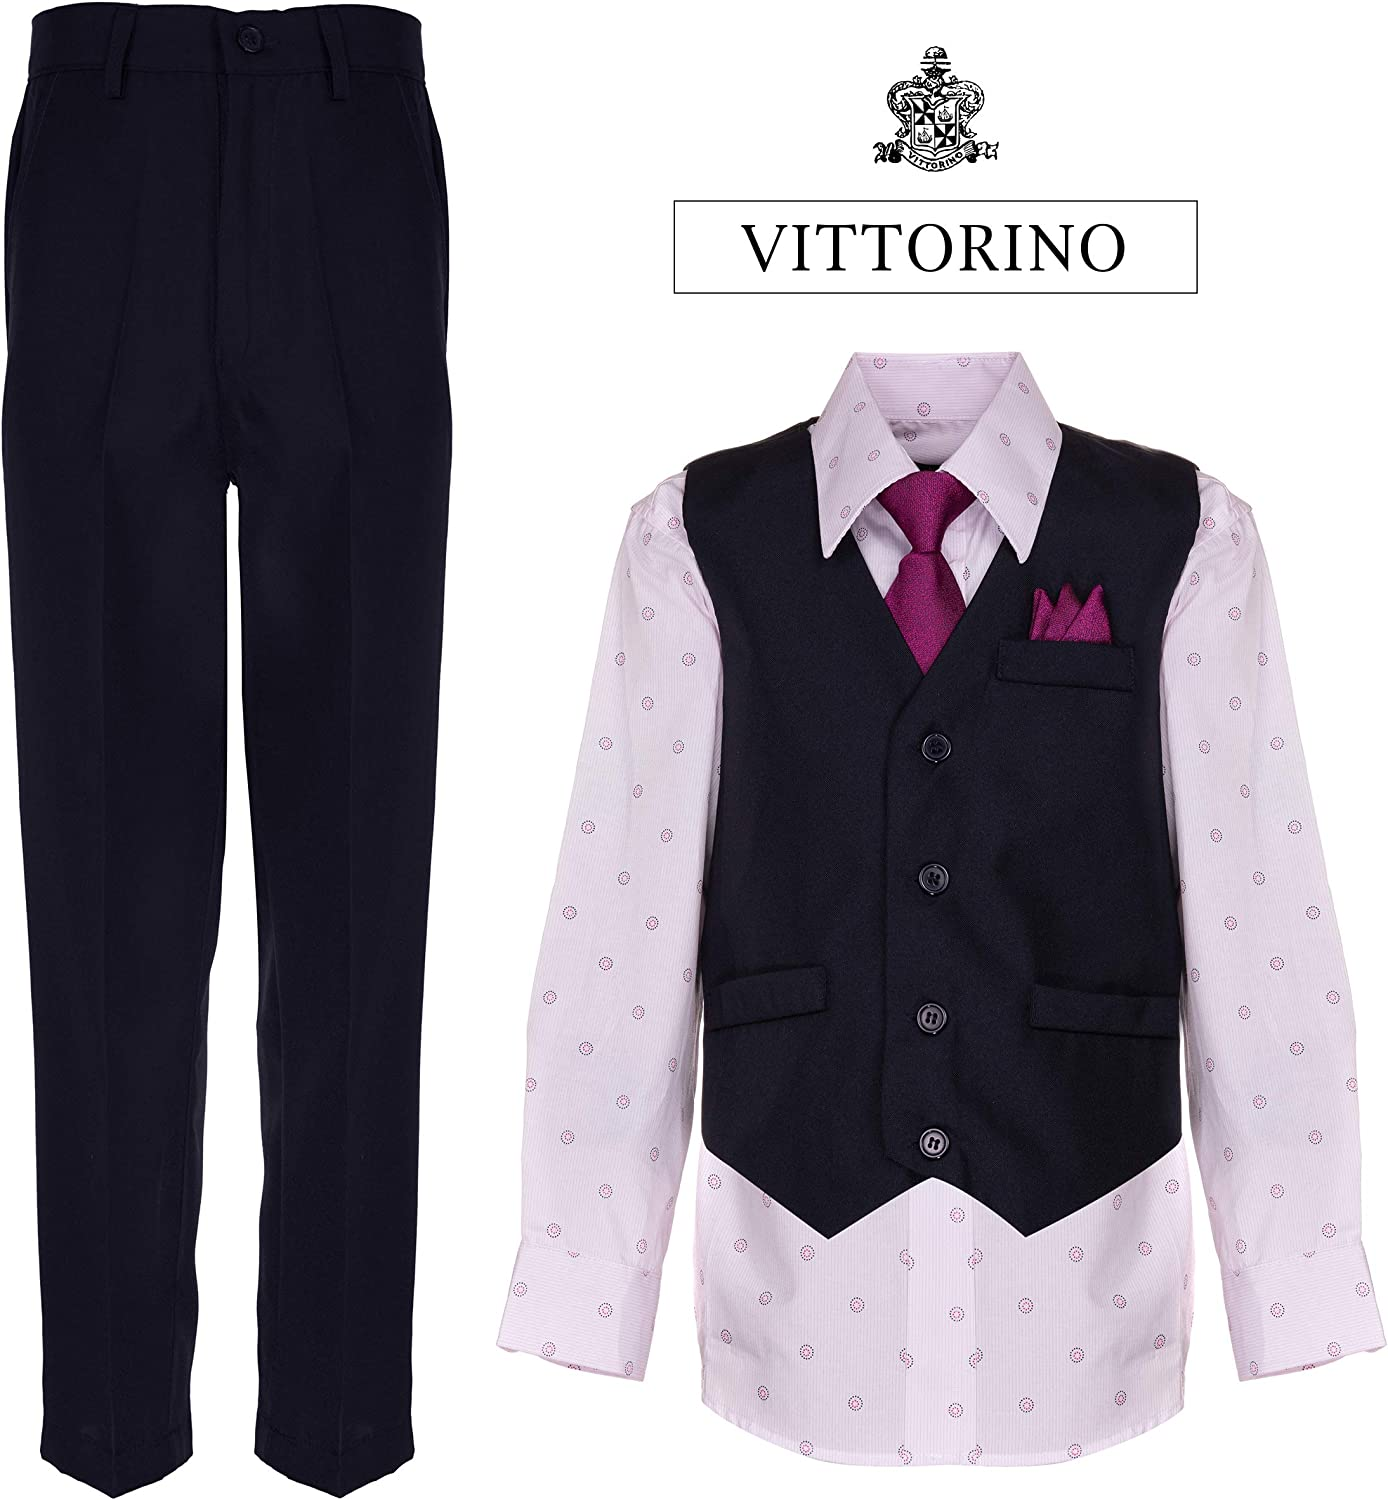 Navy//Pink Print,8 Vittorino Boys 4 Piece Holiday Suit Set with Vest Shirt Tie Pants and Hankerchief